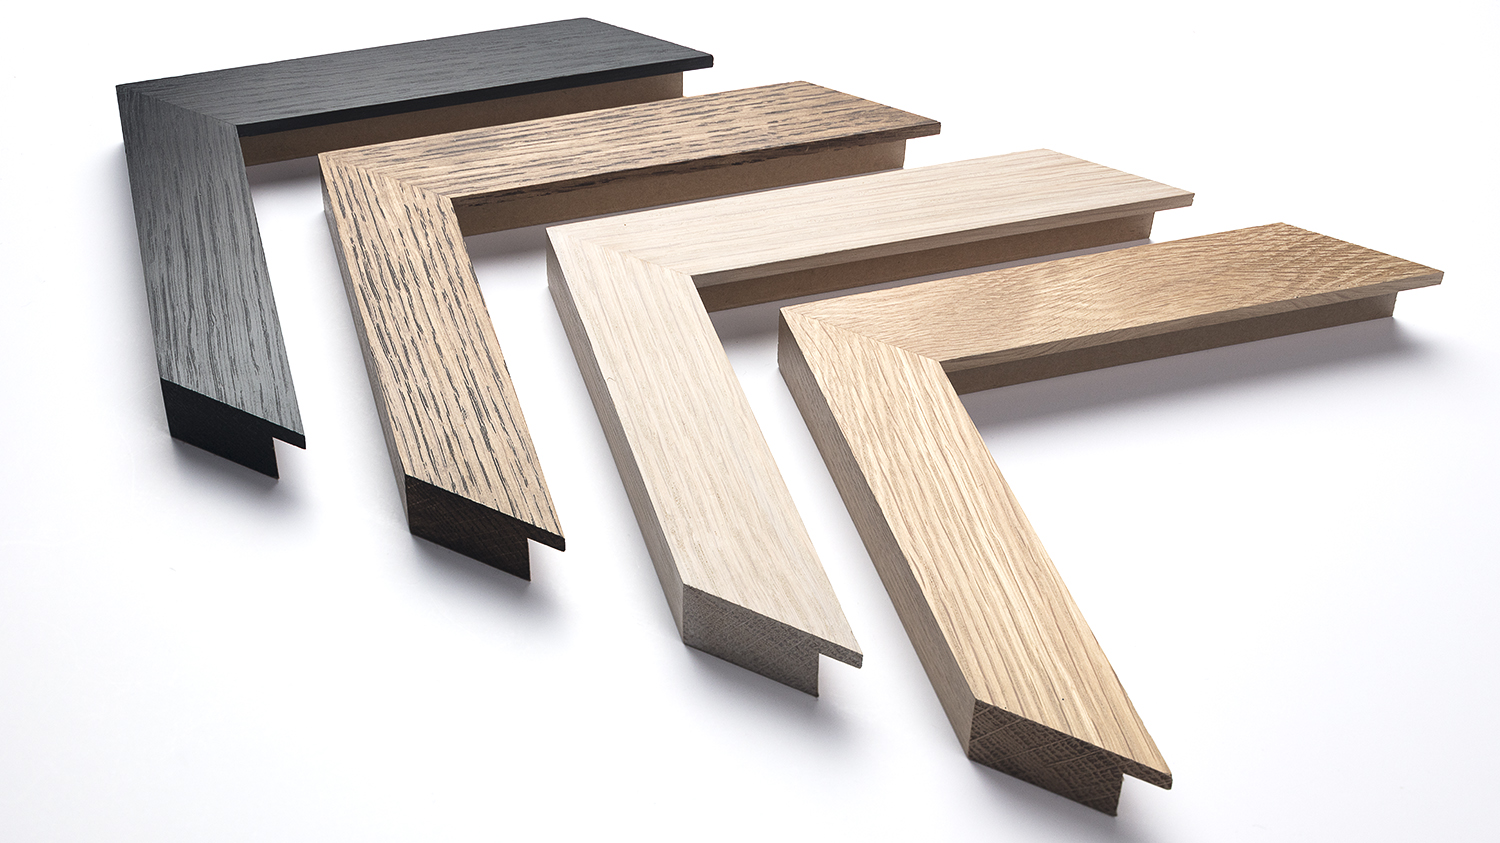 Oak Frame 30mm x 15mm (finishes shown from left to right)